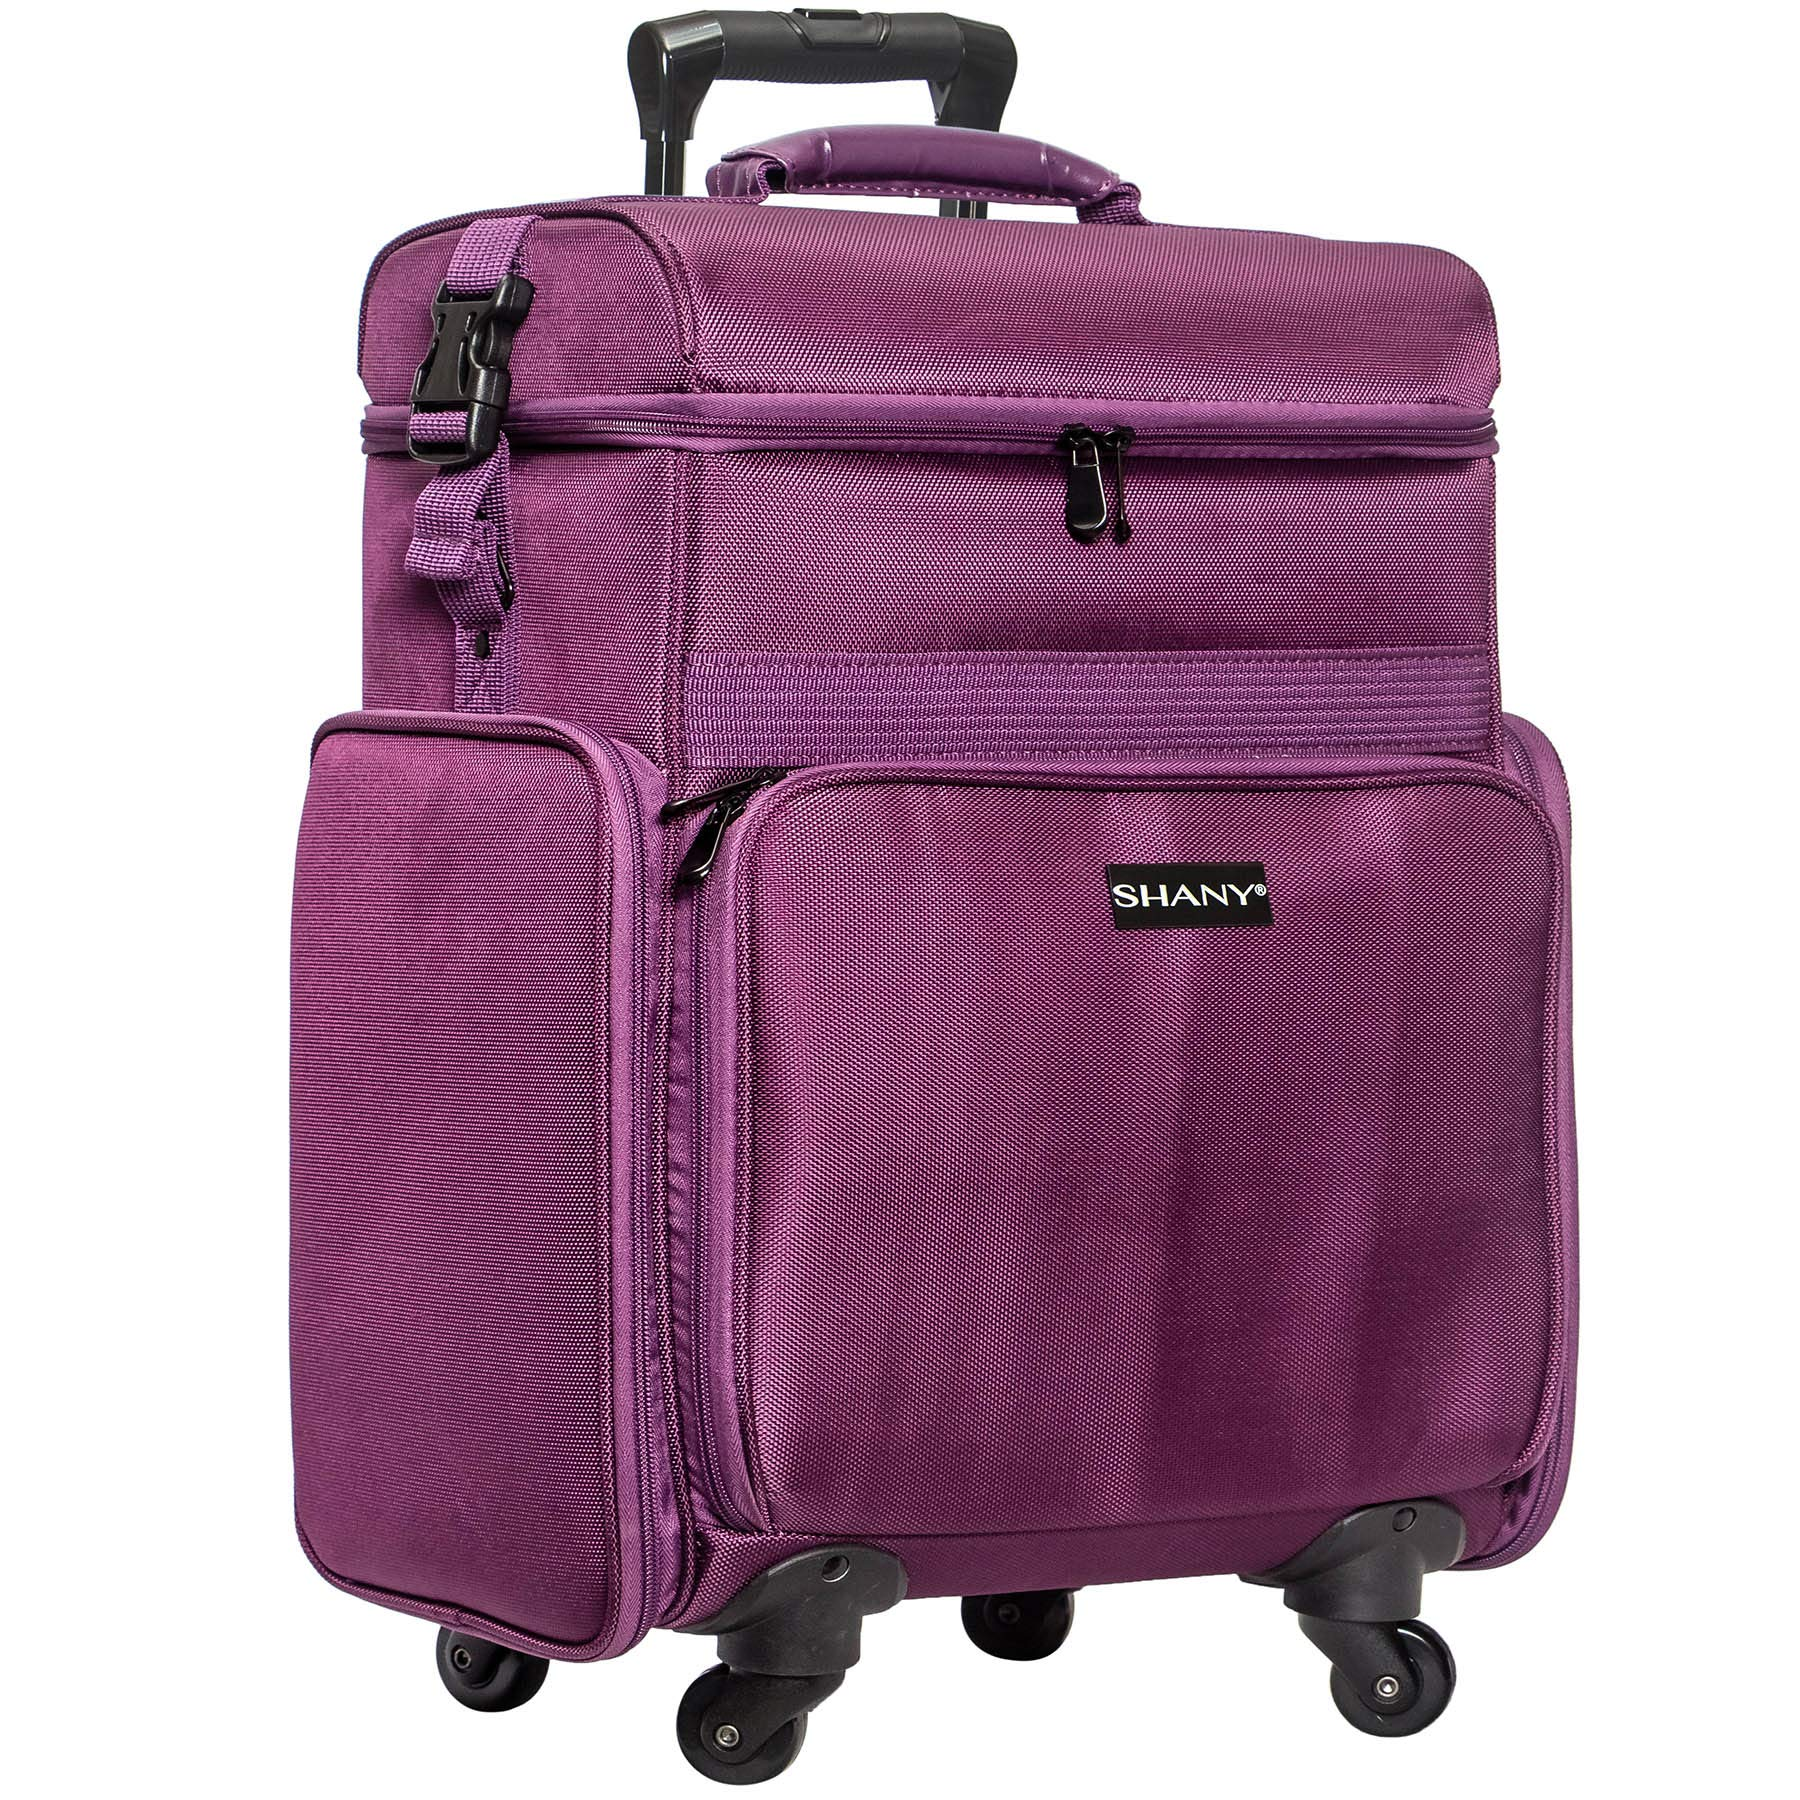 SHANY Soft Rolling Makeup Trolley Case - Multi Compartment with Laptop/iPad Holder - Set of 3 Free Cosmetic Organizers - 360 Wheels - PURPLE